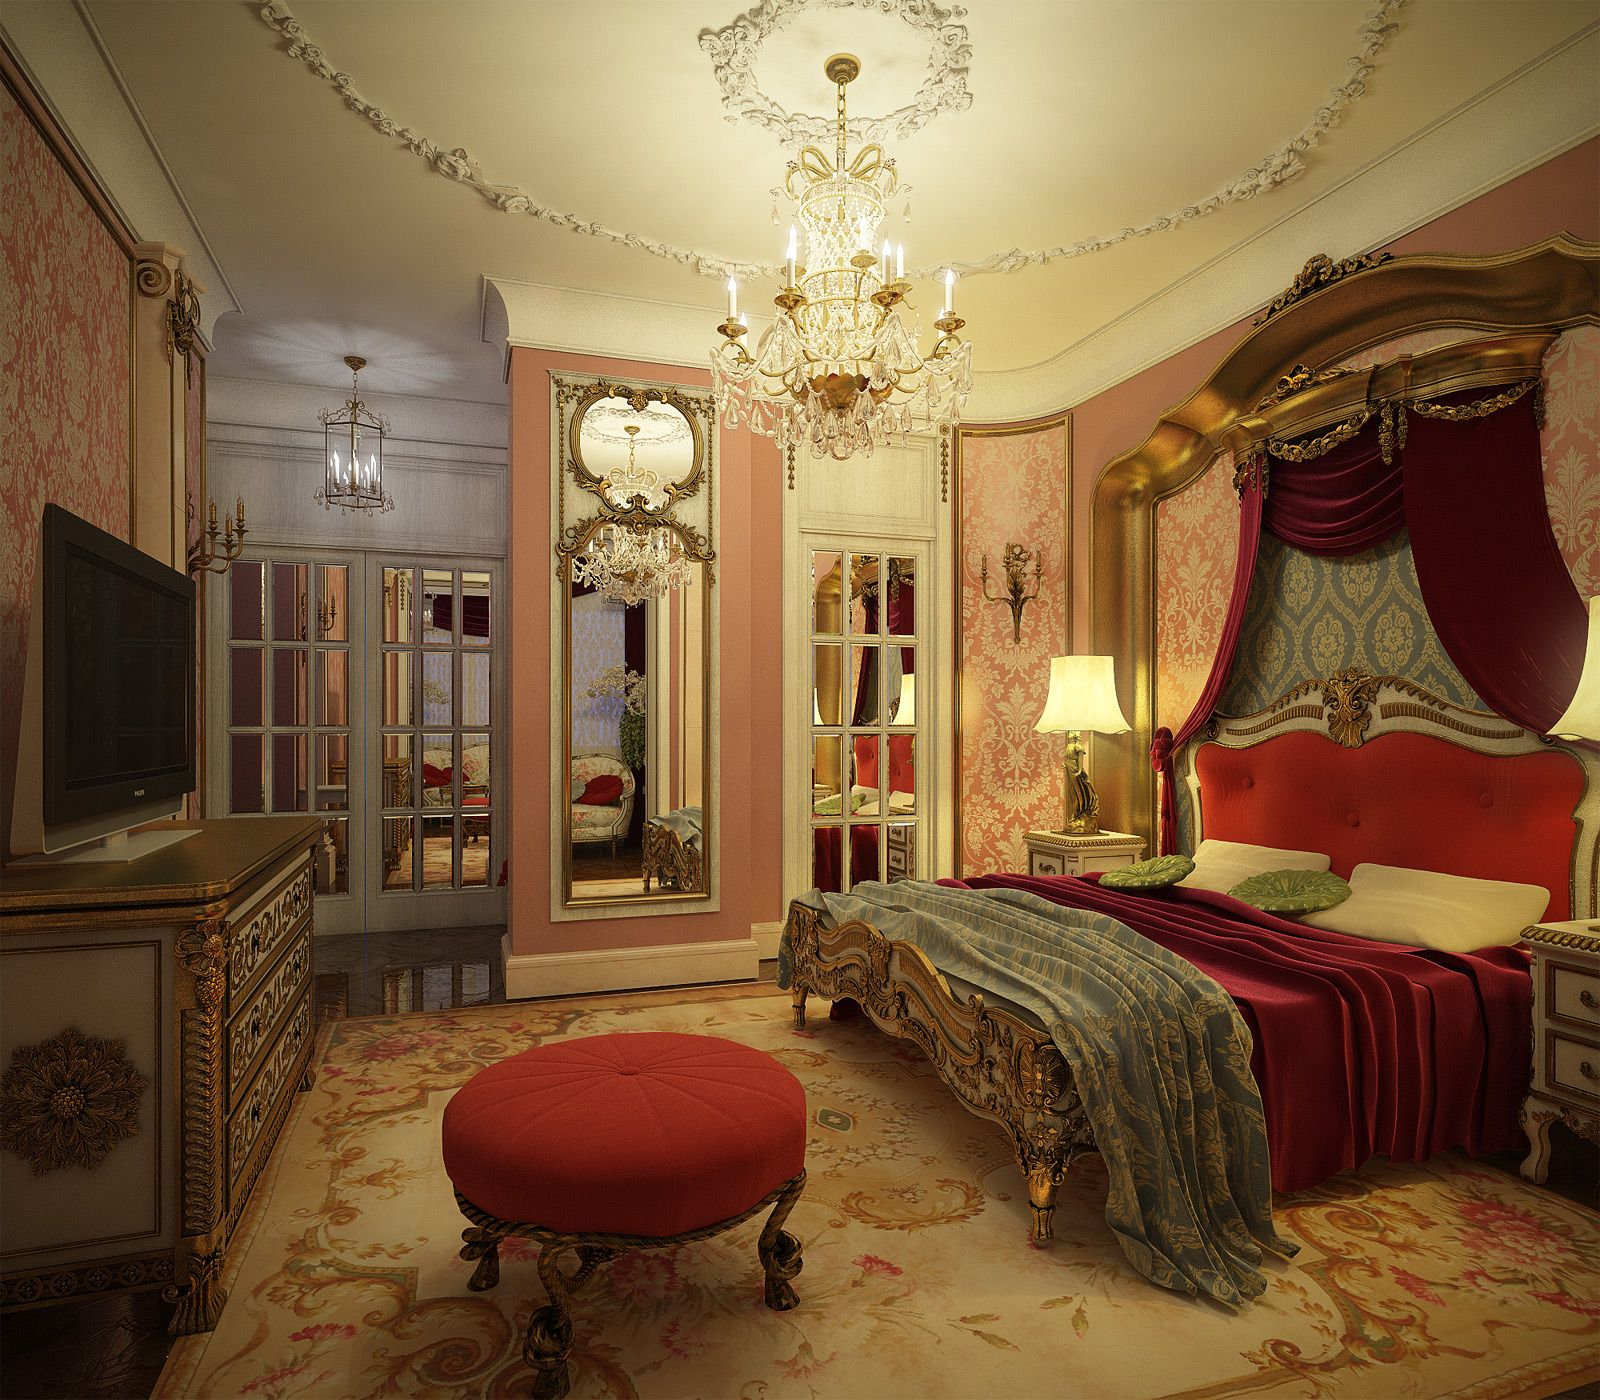 Bedroom Art Amazon Diy Romantic Bedroom Decorating Ideas Universal Furniture Bedroom Sets Bedroom Interior With Cupboard: The Most Amazing Bedroom I Have Ever Seen! Opulent Bedroom